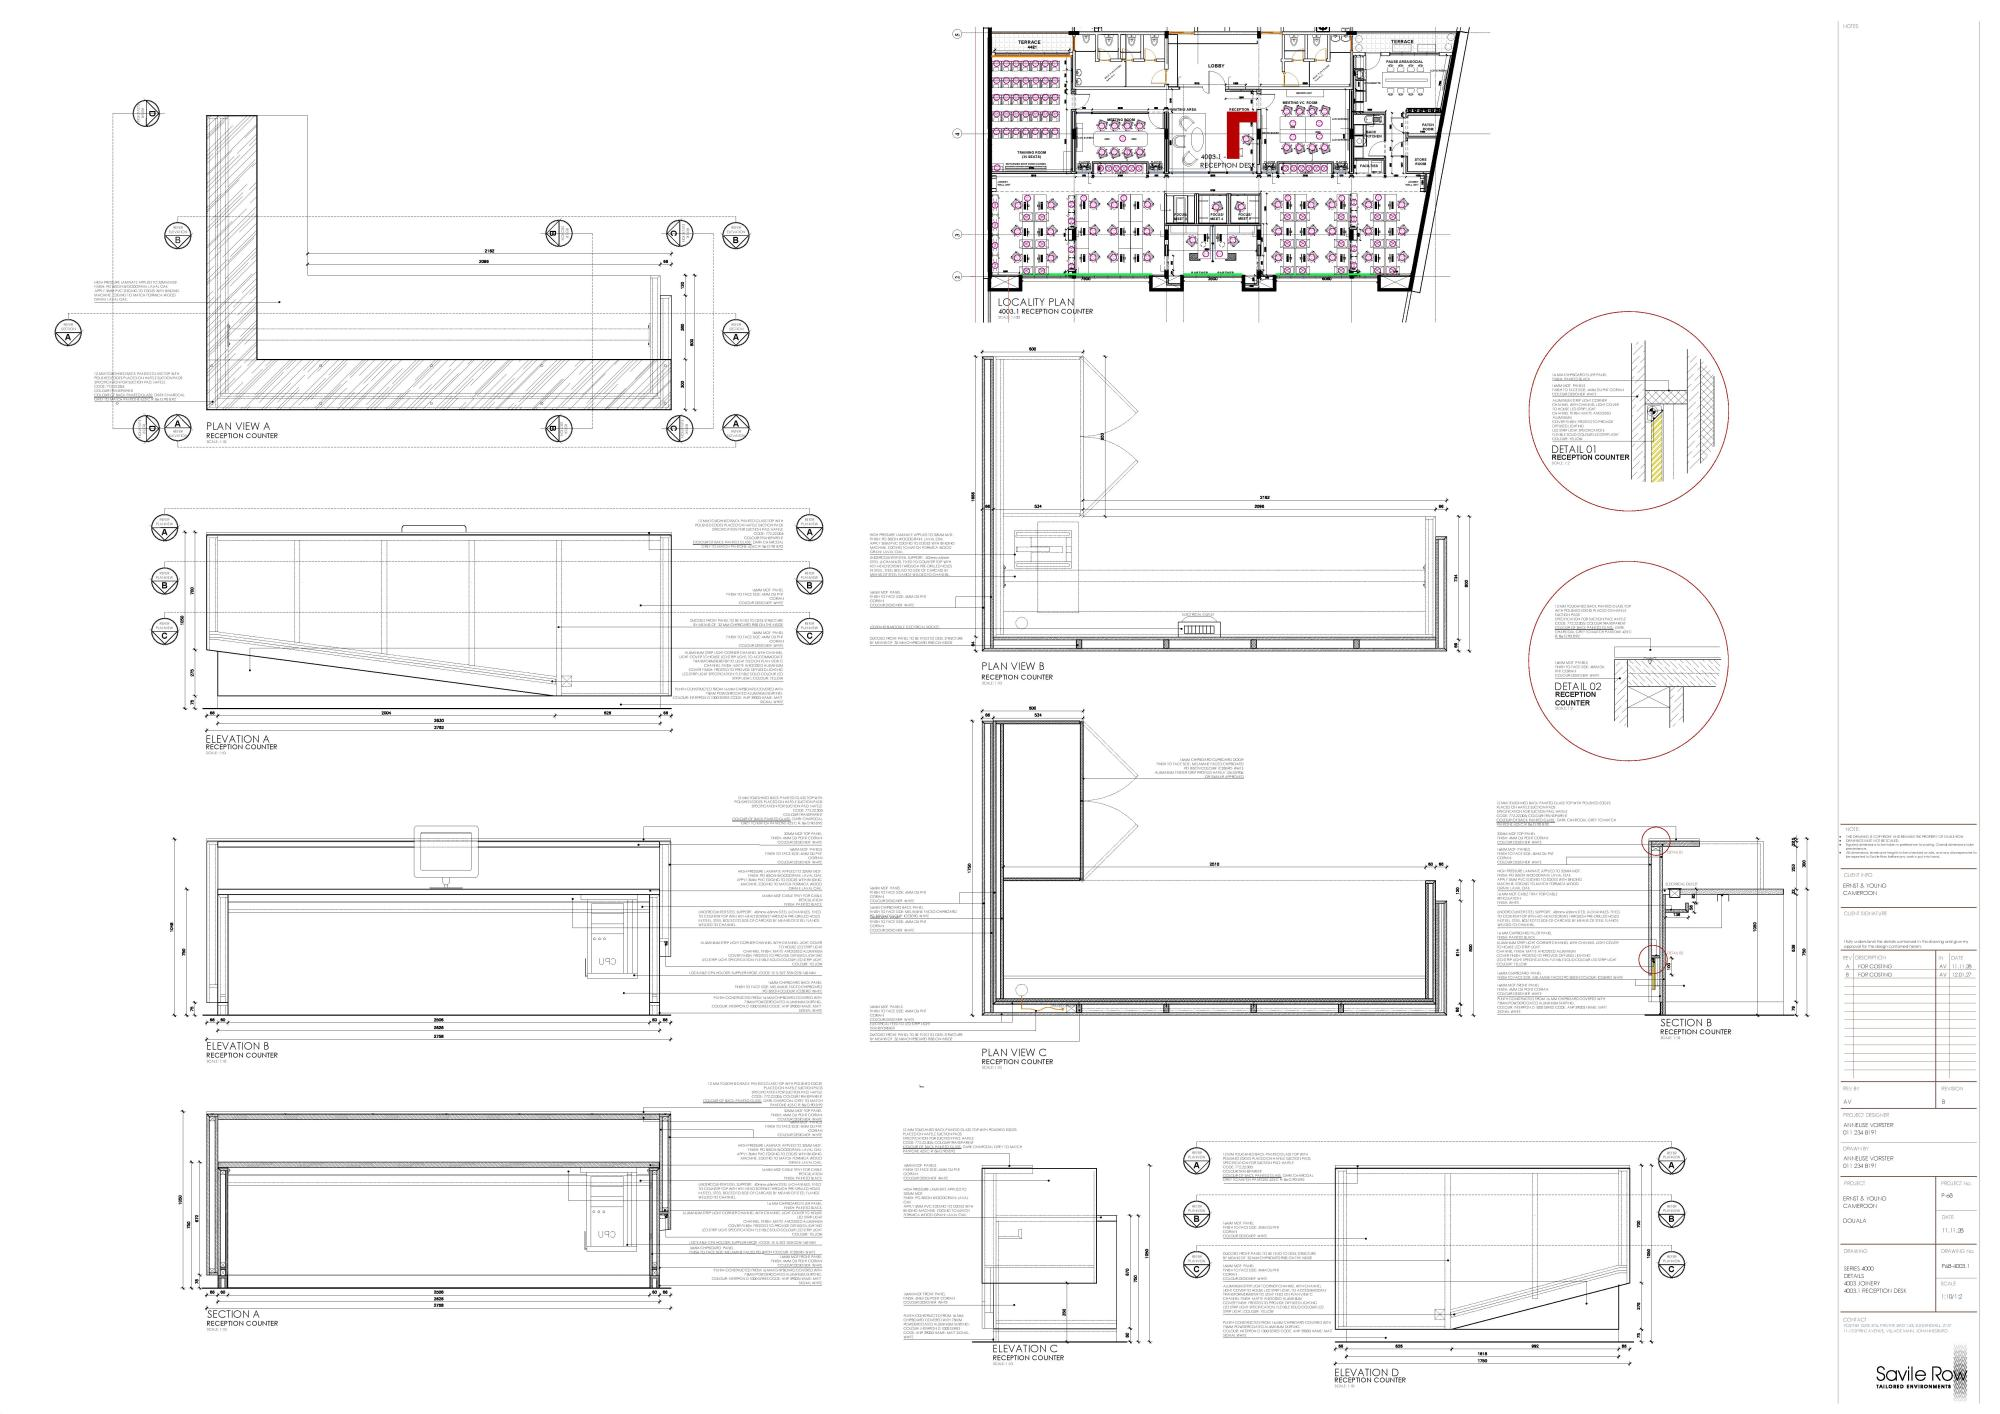 hight resolution of diy reception desk construction plans pdf download plans for a dresser macho93aav